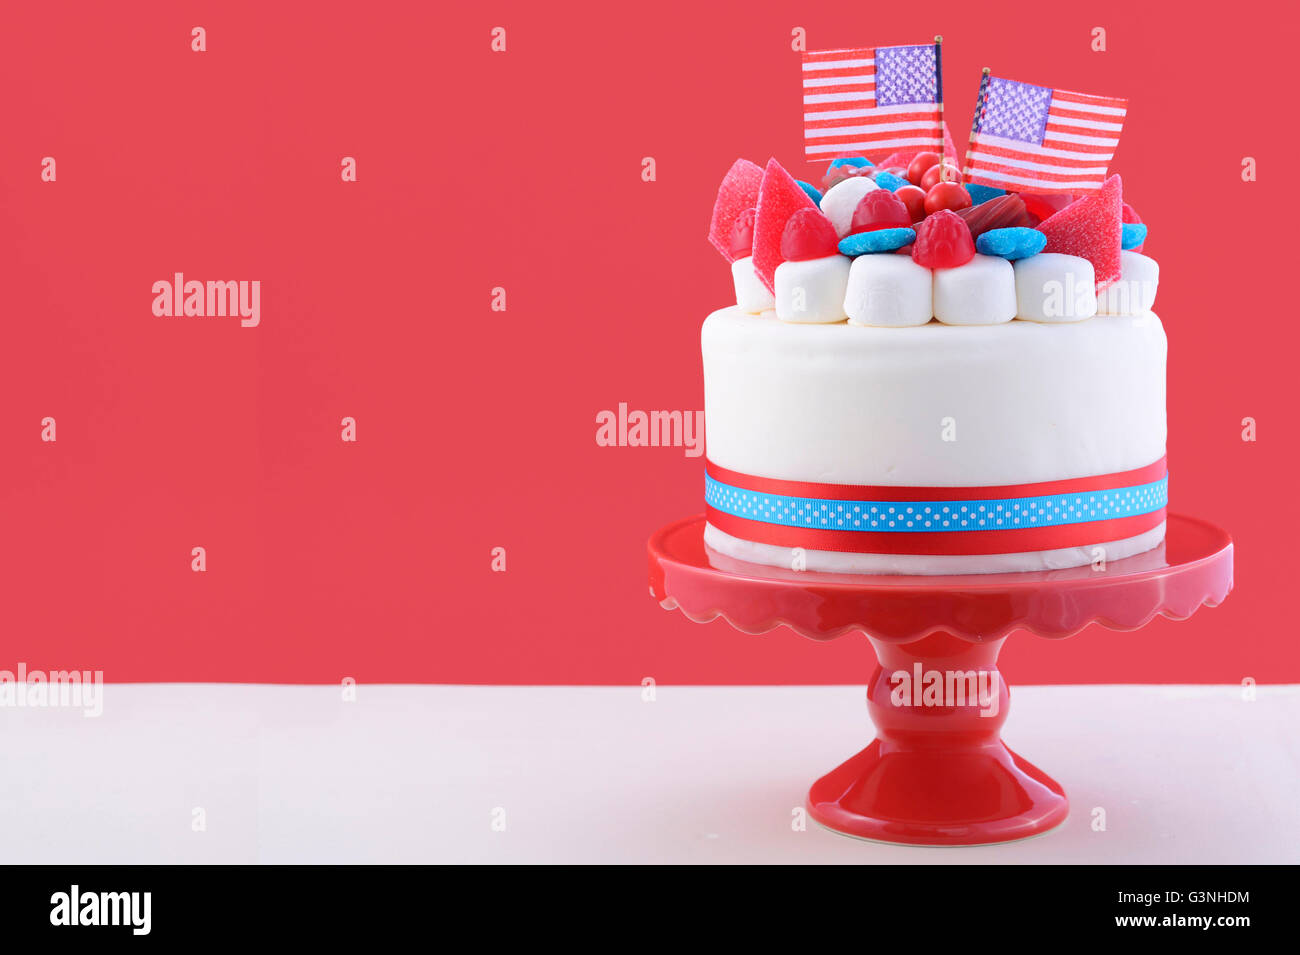 Happy Fourth Of July Celebration Cake With Flags Marshmallow And Candy Decorations On A Red Stand White Table Against